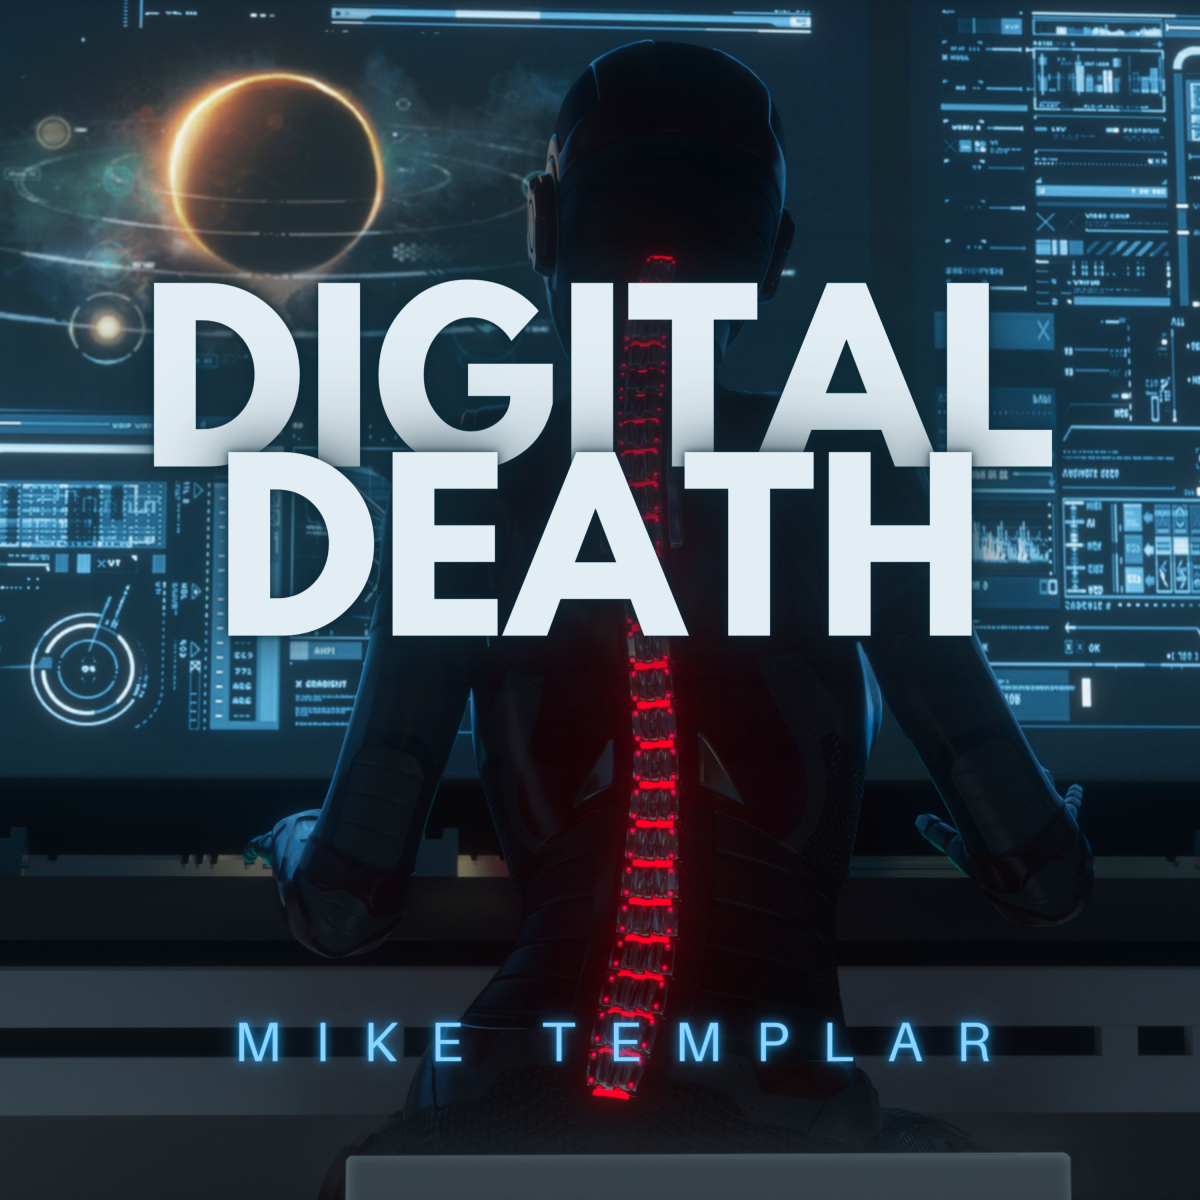 synth-album-review-digital-death-by-mike-templar